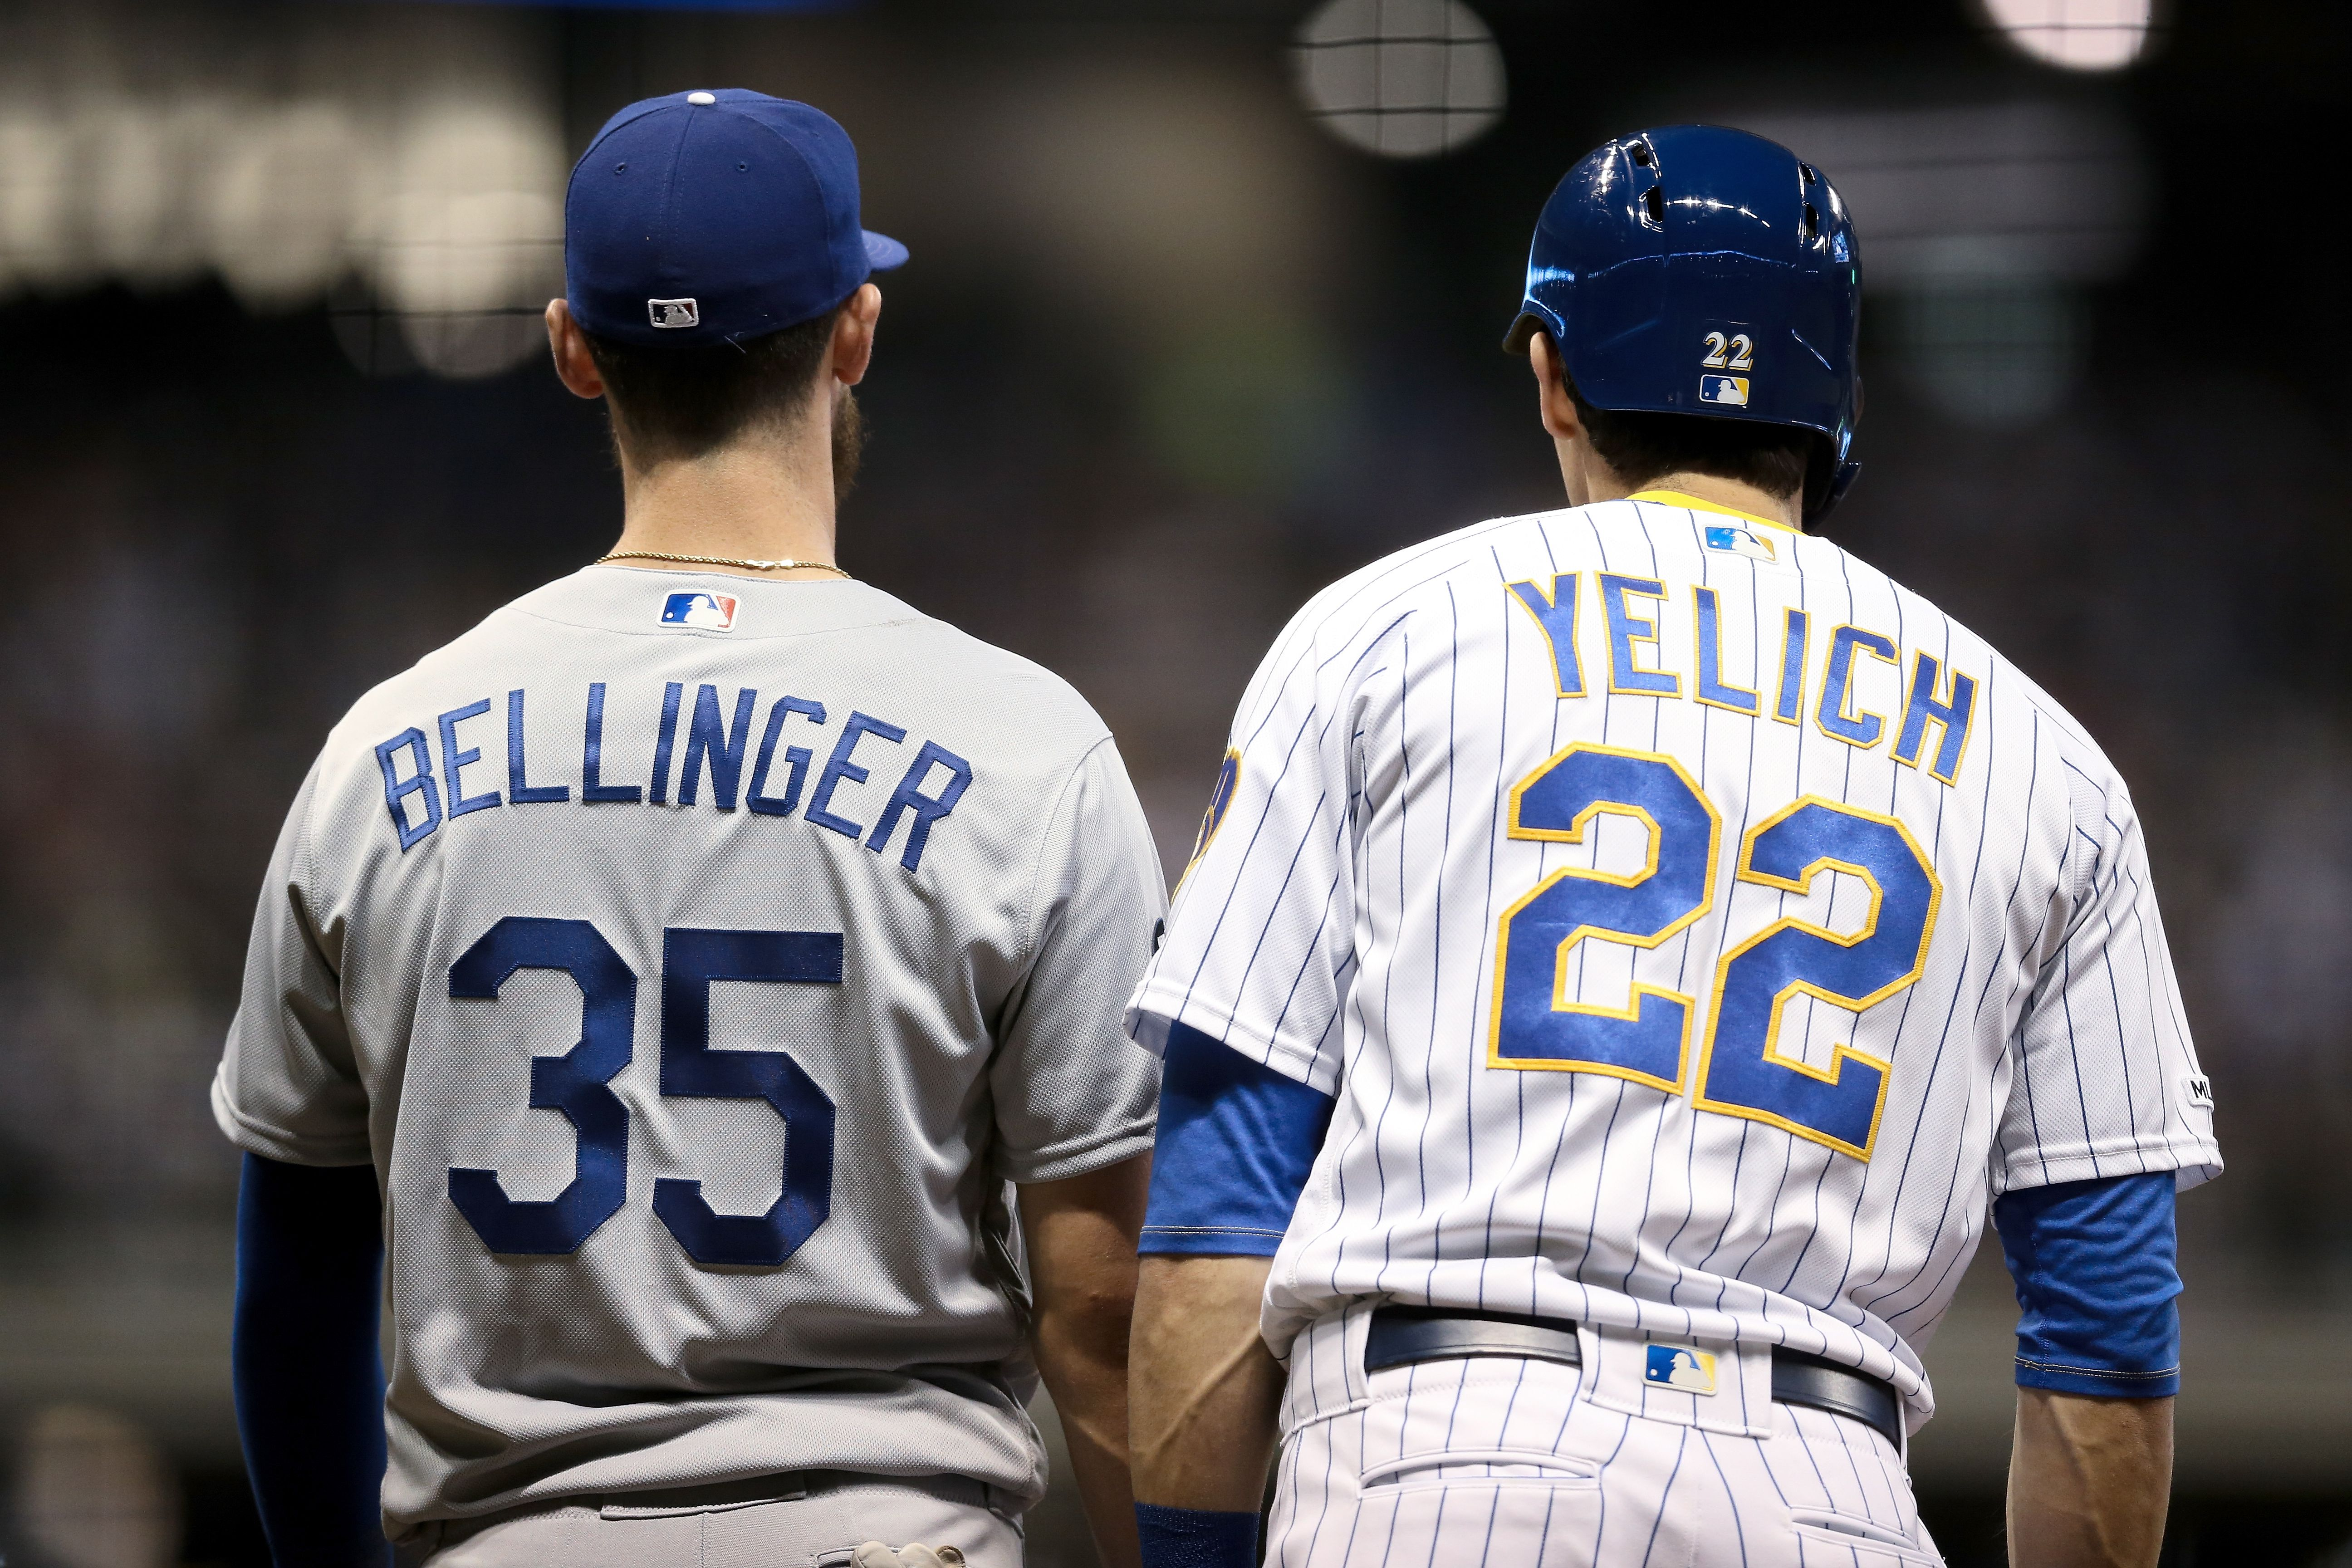 Cody Bellinger and Christian Yelich